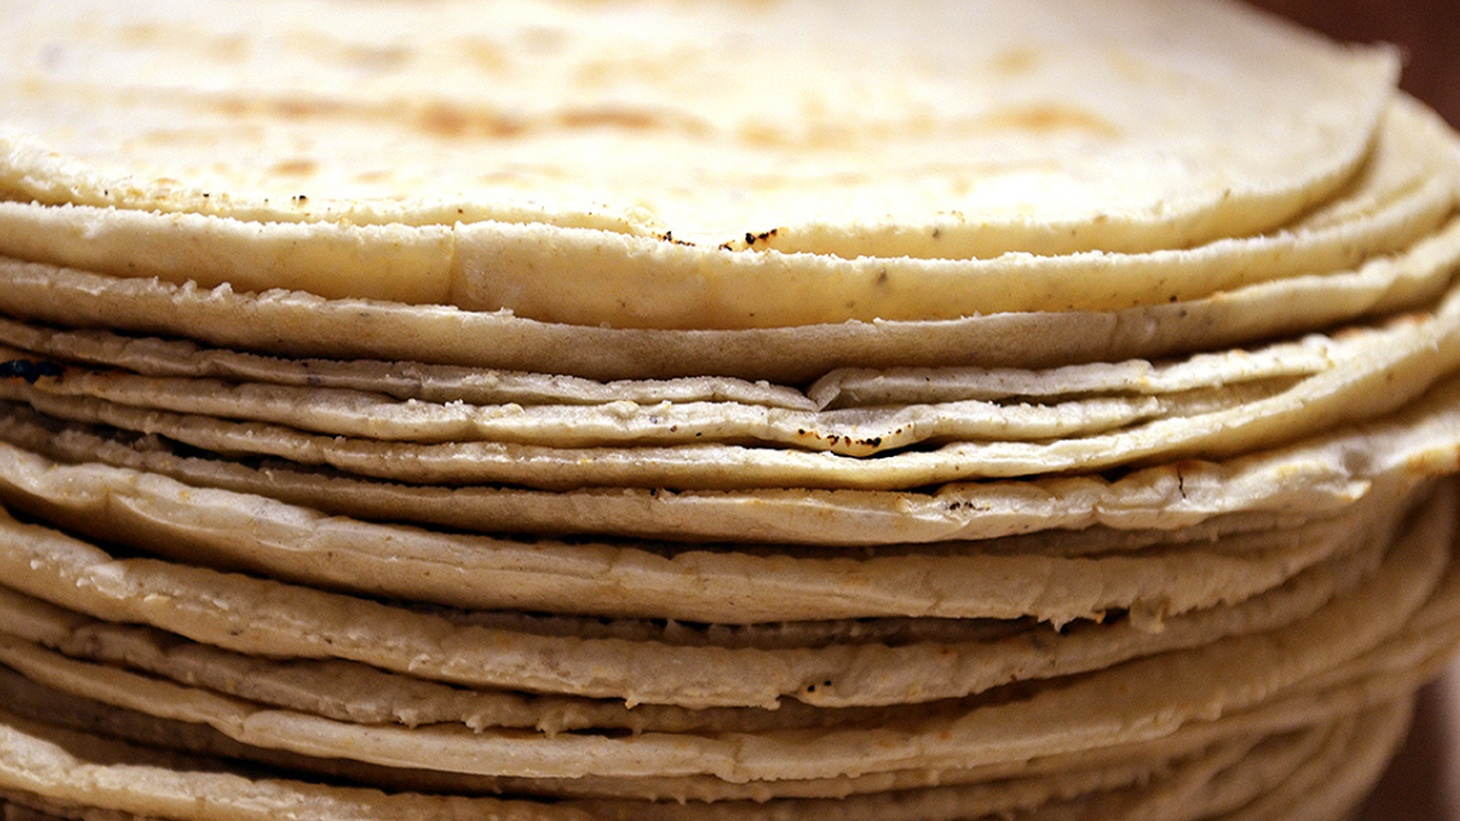 Let's talk tortillas! Gustavo Arellano announces KCRW's first-ever Great Tortilla Tournament, to choose the best tortilla in LA out of a bracket of 64. Bill Esparza talks tortilla makers in the L.A. area.